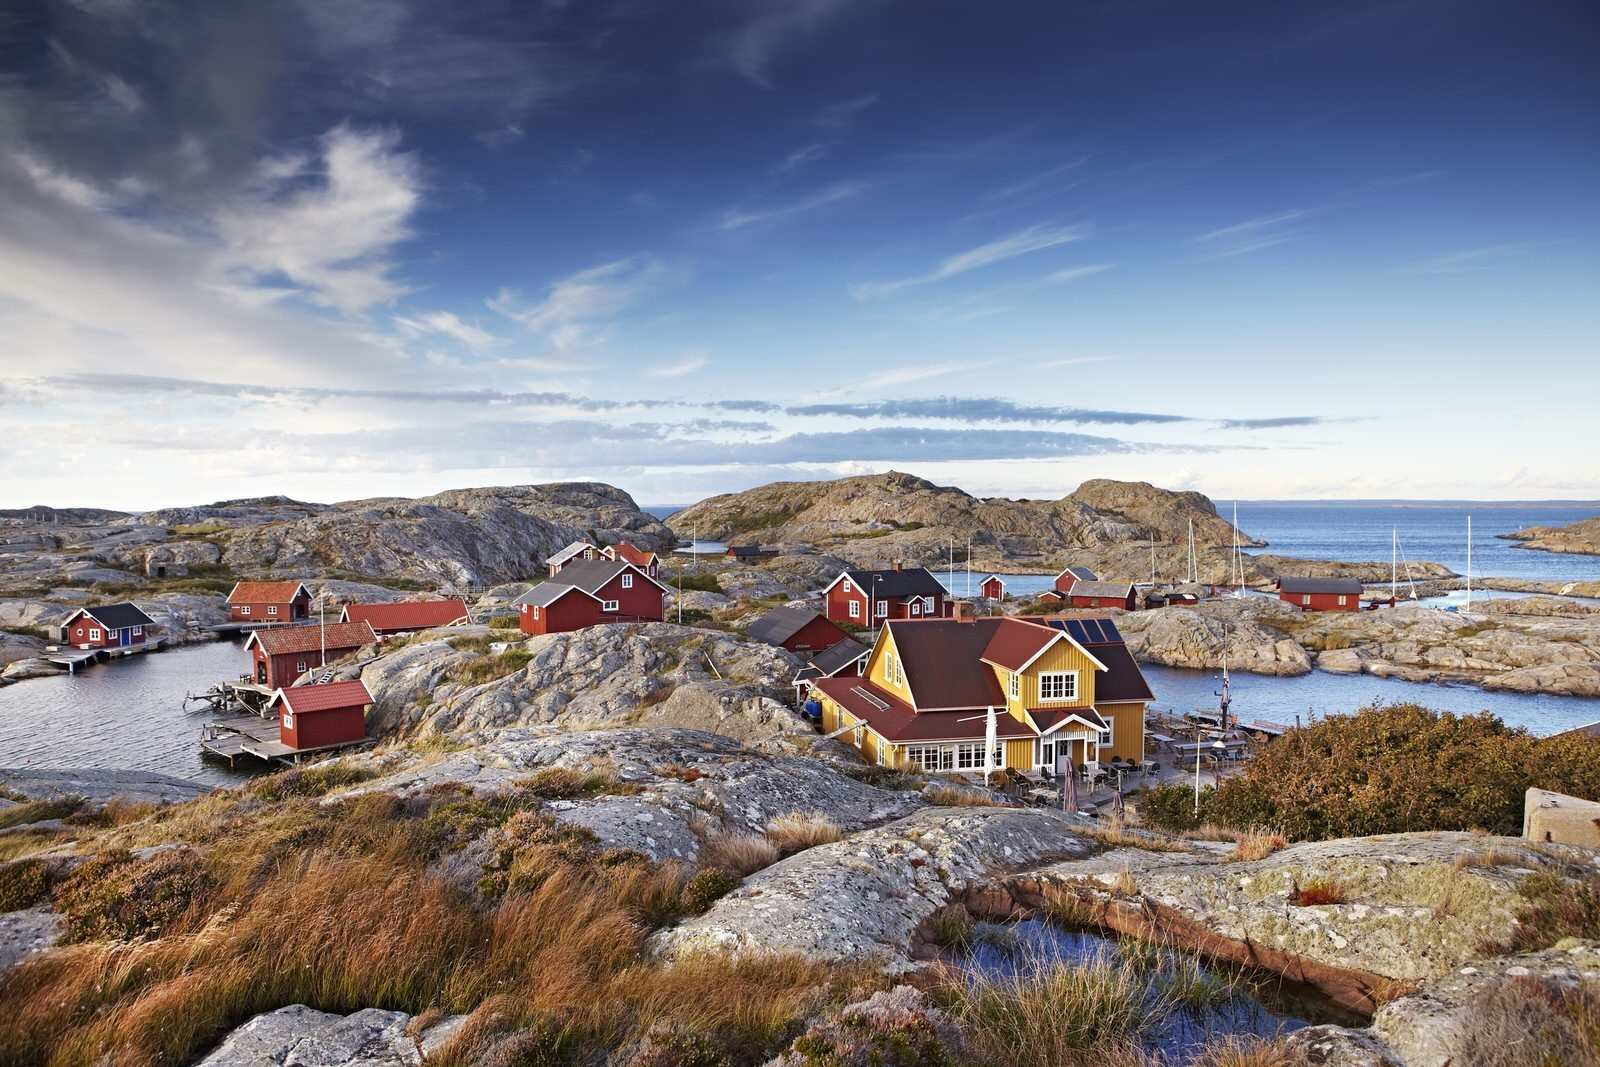 Road-tripping Sweden's sublime Bohuslän Coast